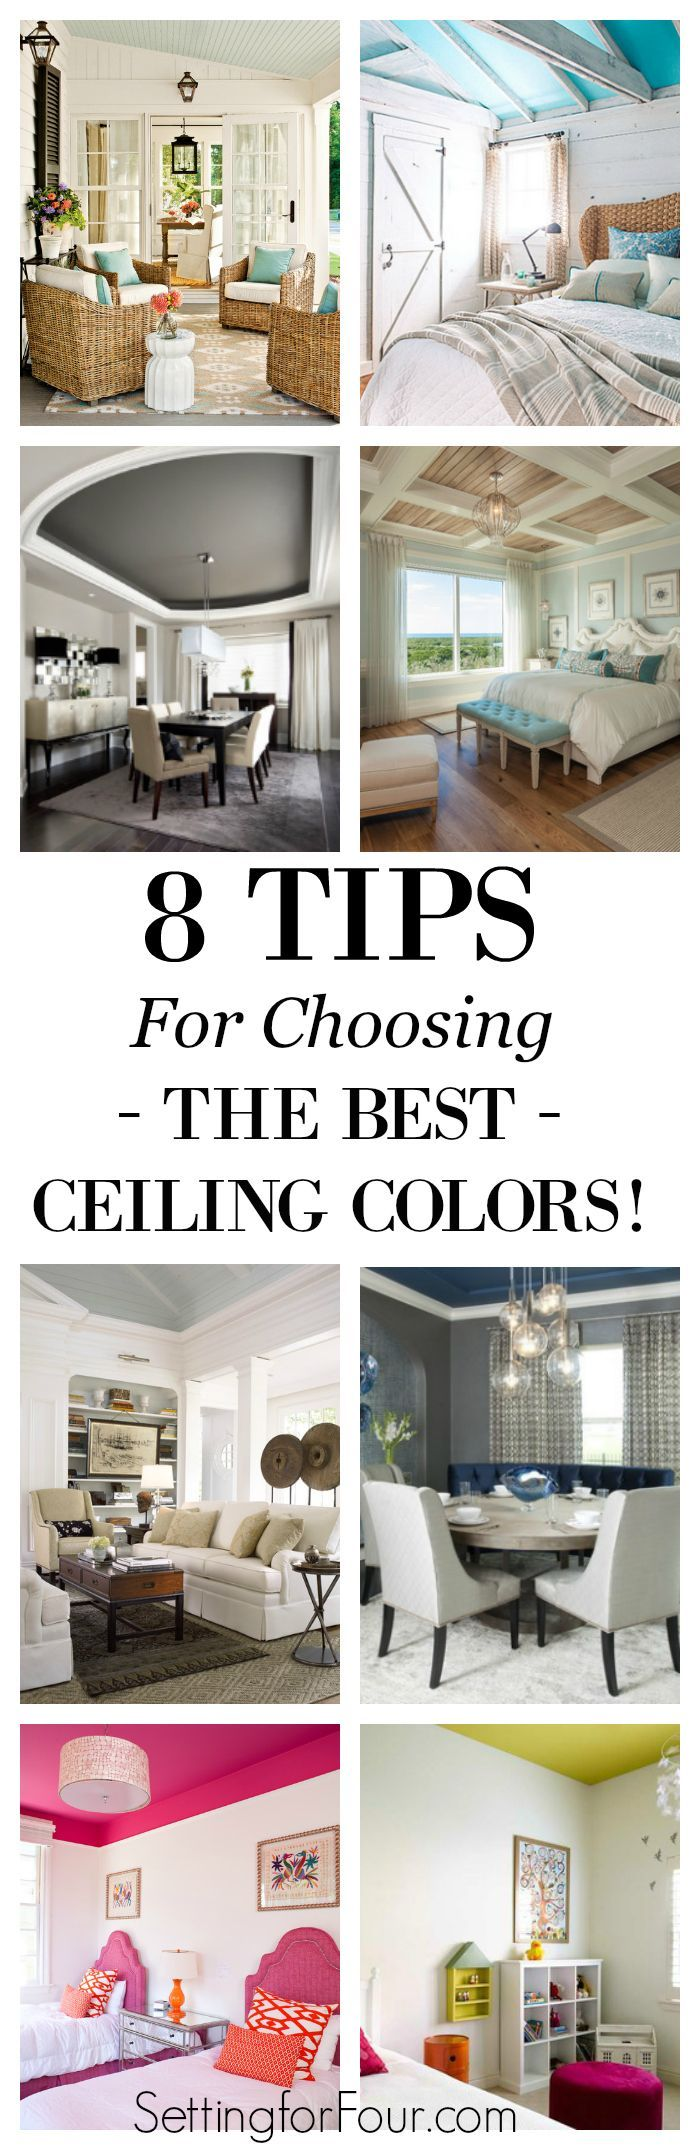 871 best decorate home images on pinterest diy craft ideas